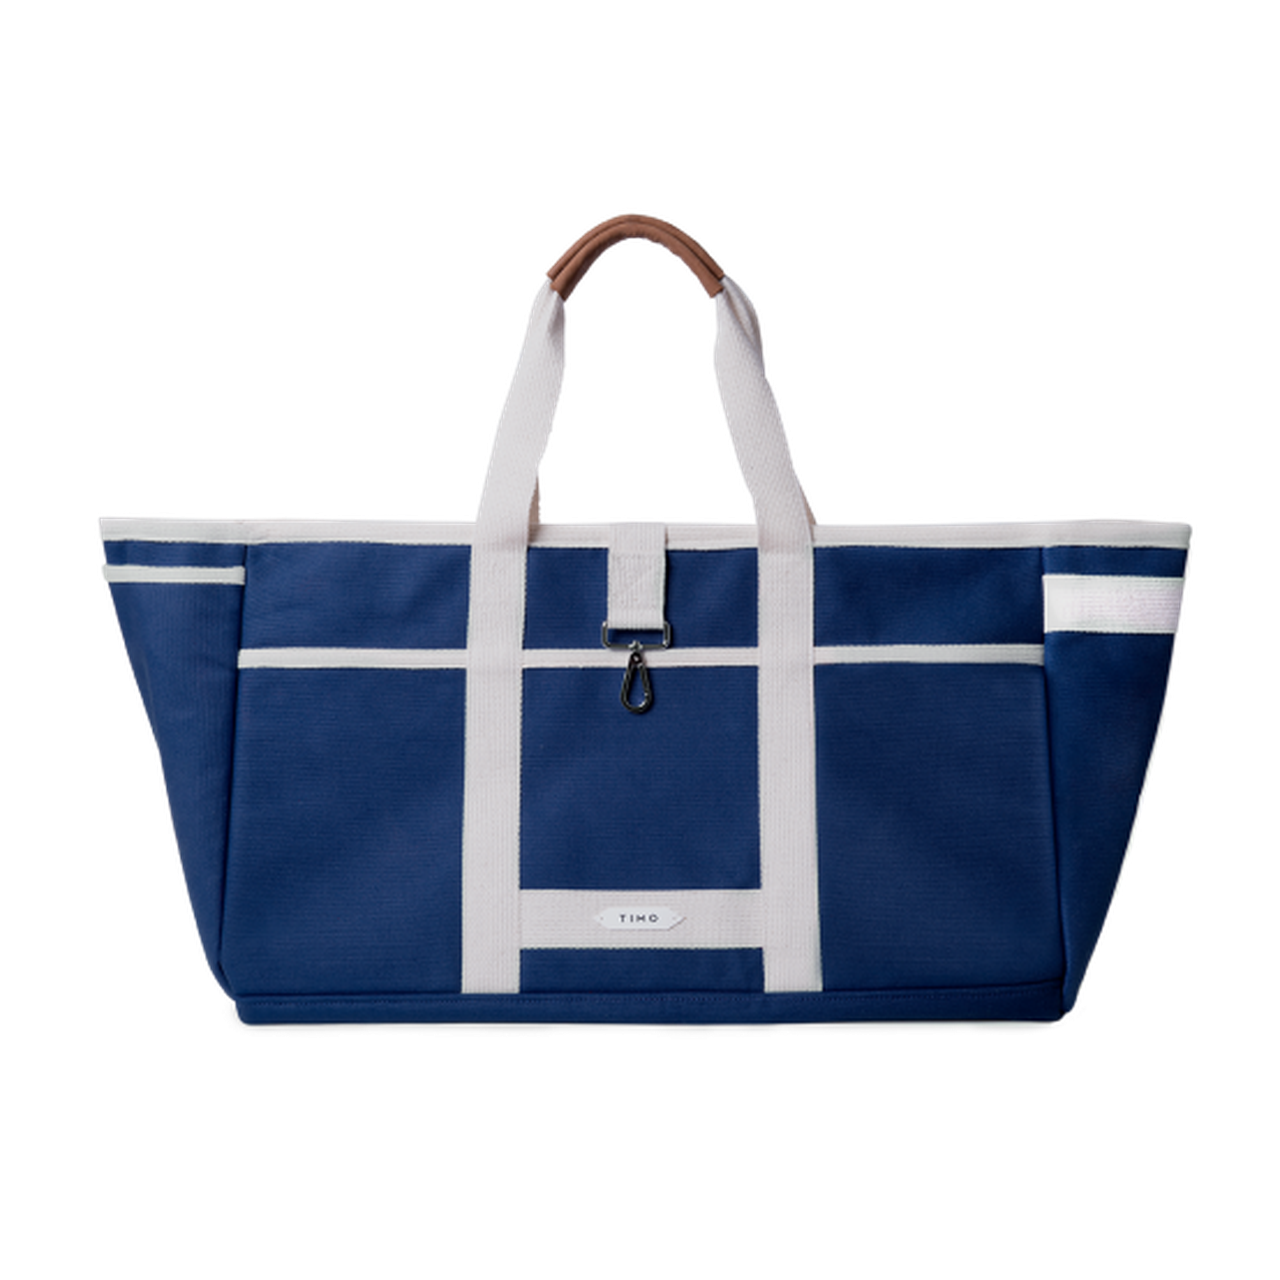 Timo Weekender Bag in Blue